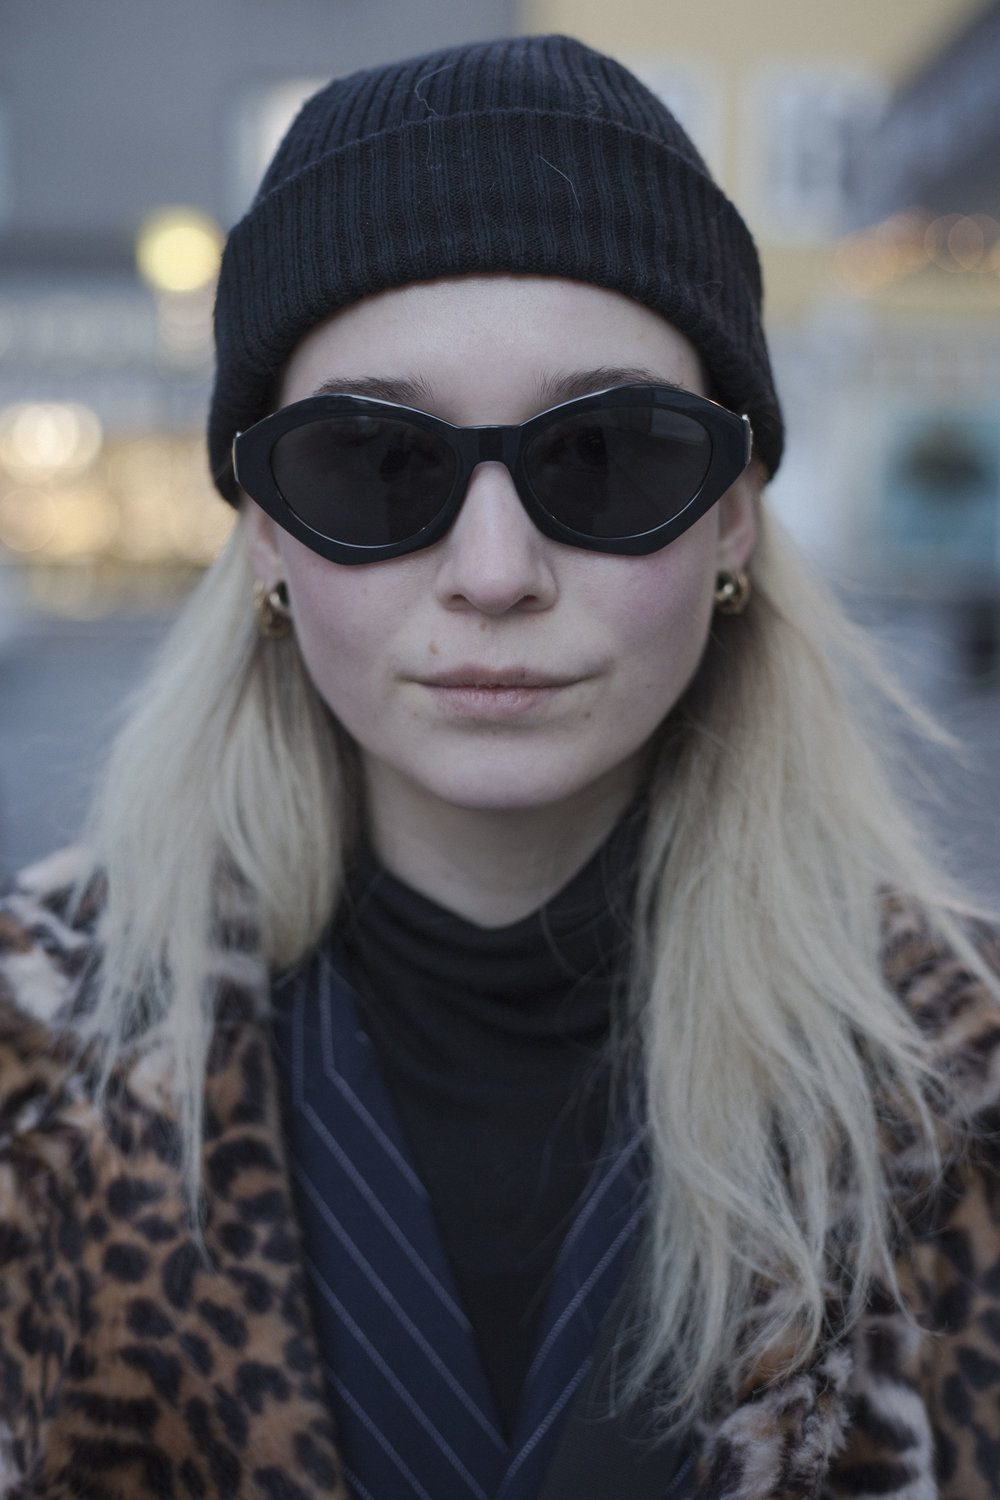 On the streets of Reykjavik. Stylish layering with Versace sunglasses.